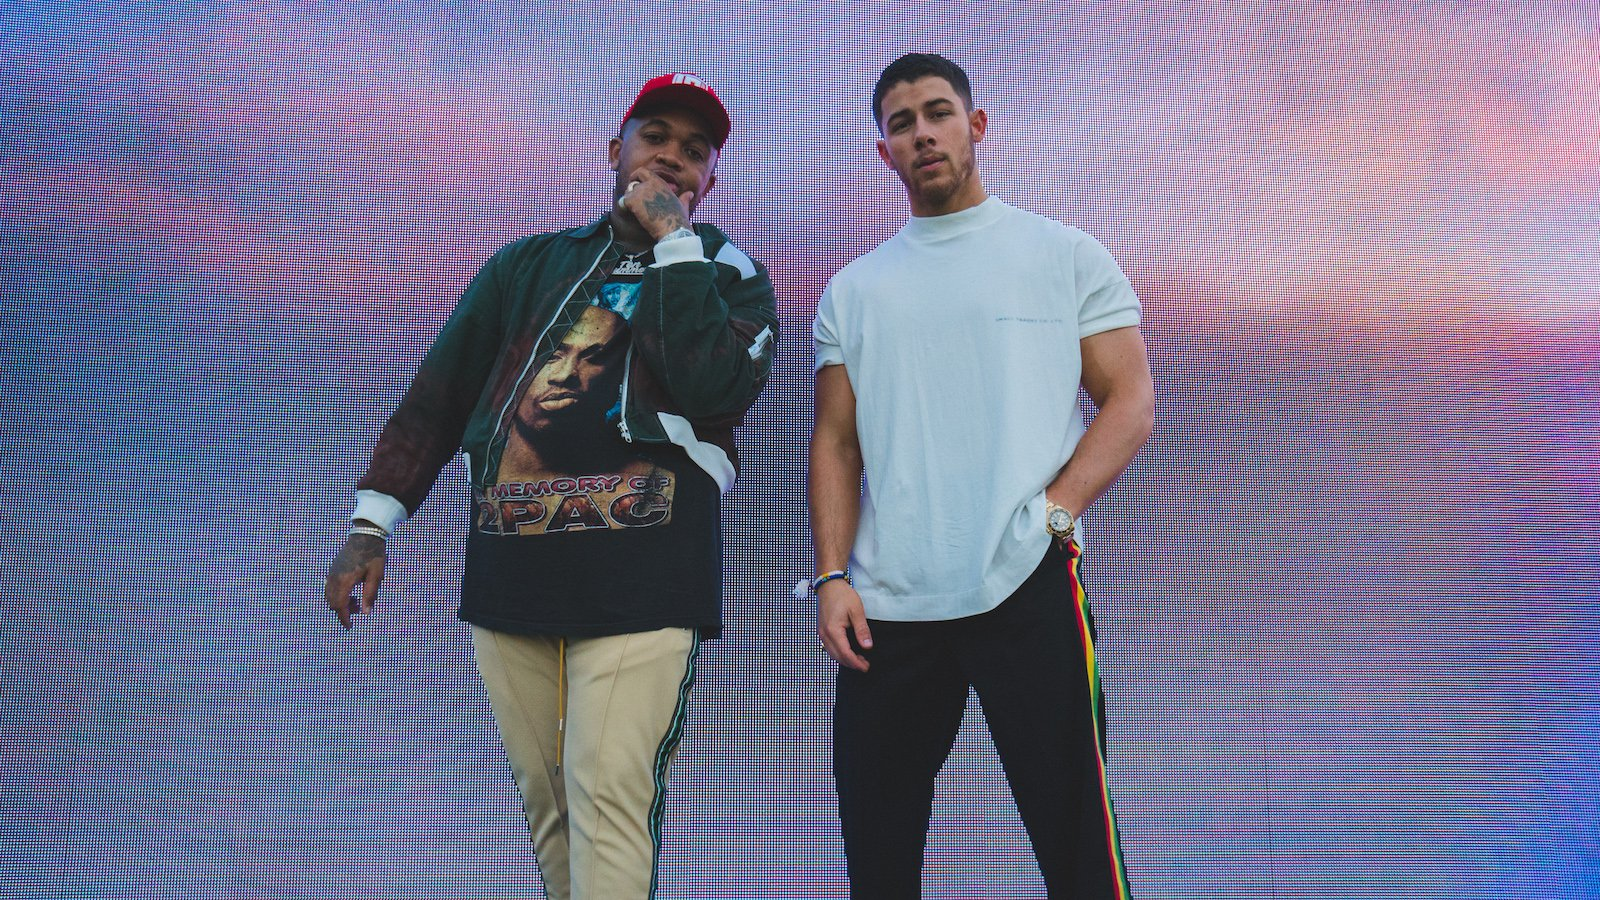 DJ Mustard is just @Mustard now, and here's his new single with @NickJonas https://t.co/GOzSEBacWH https://t.co/FIsGjgek1O